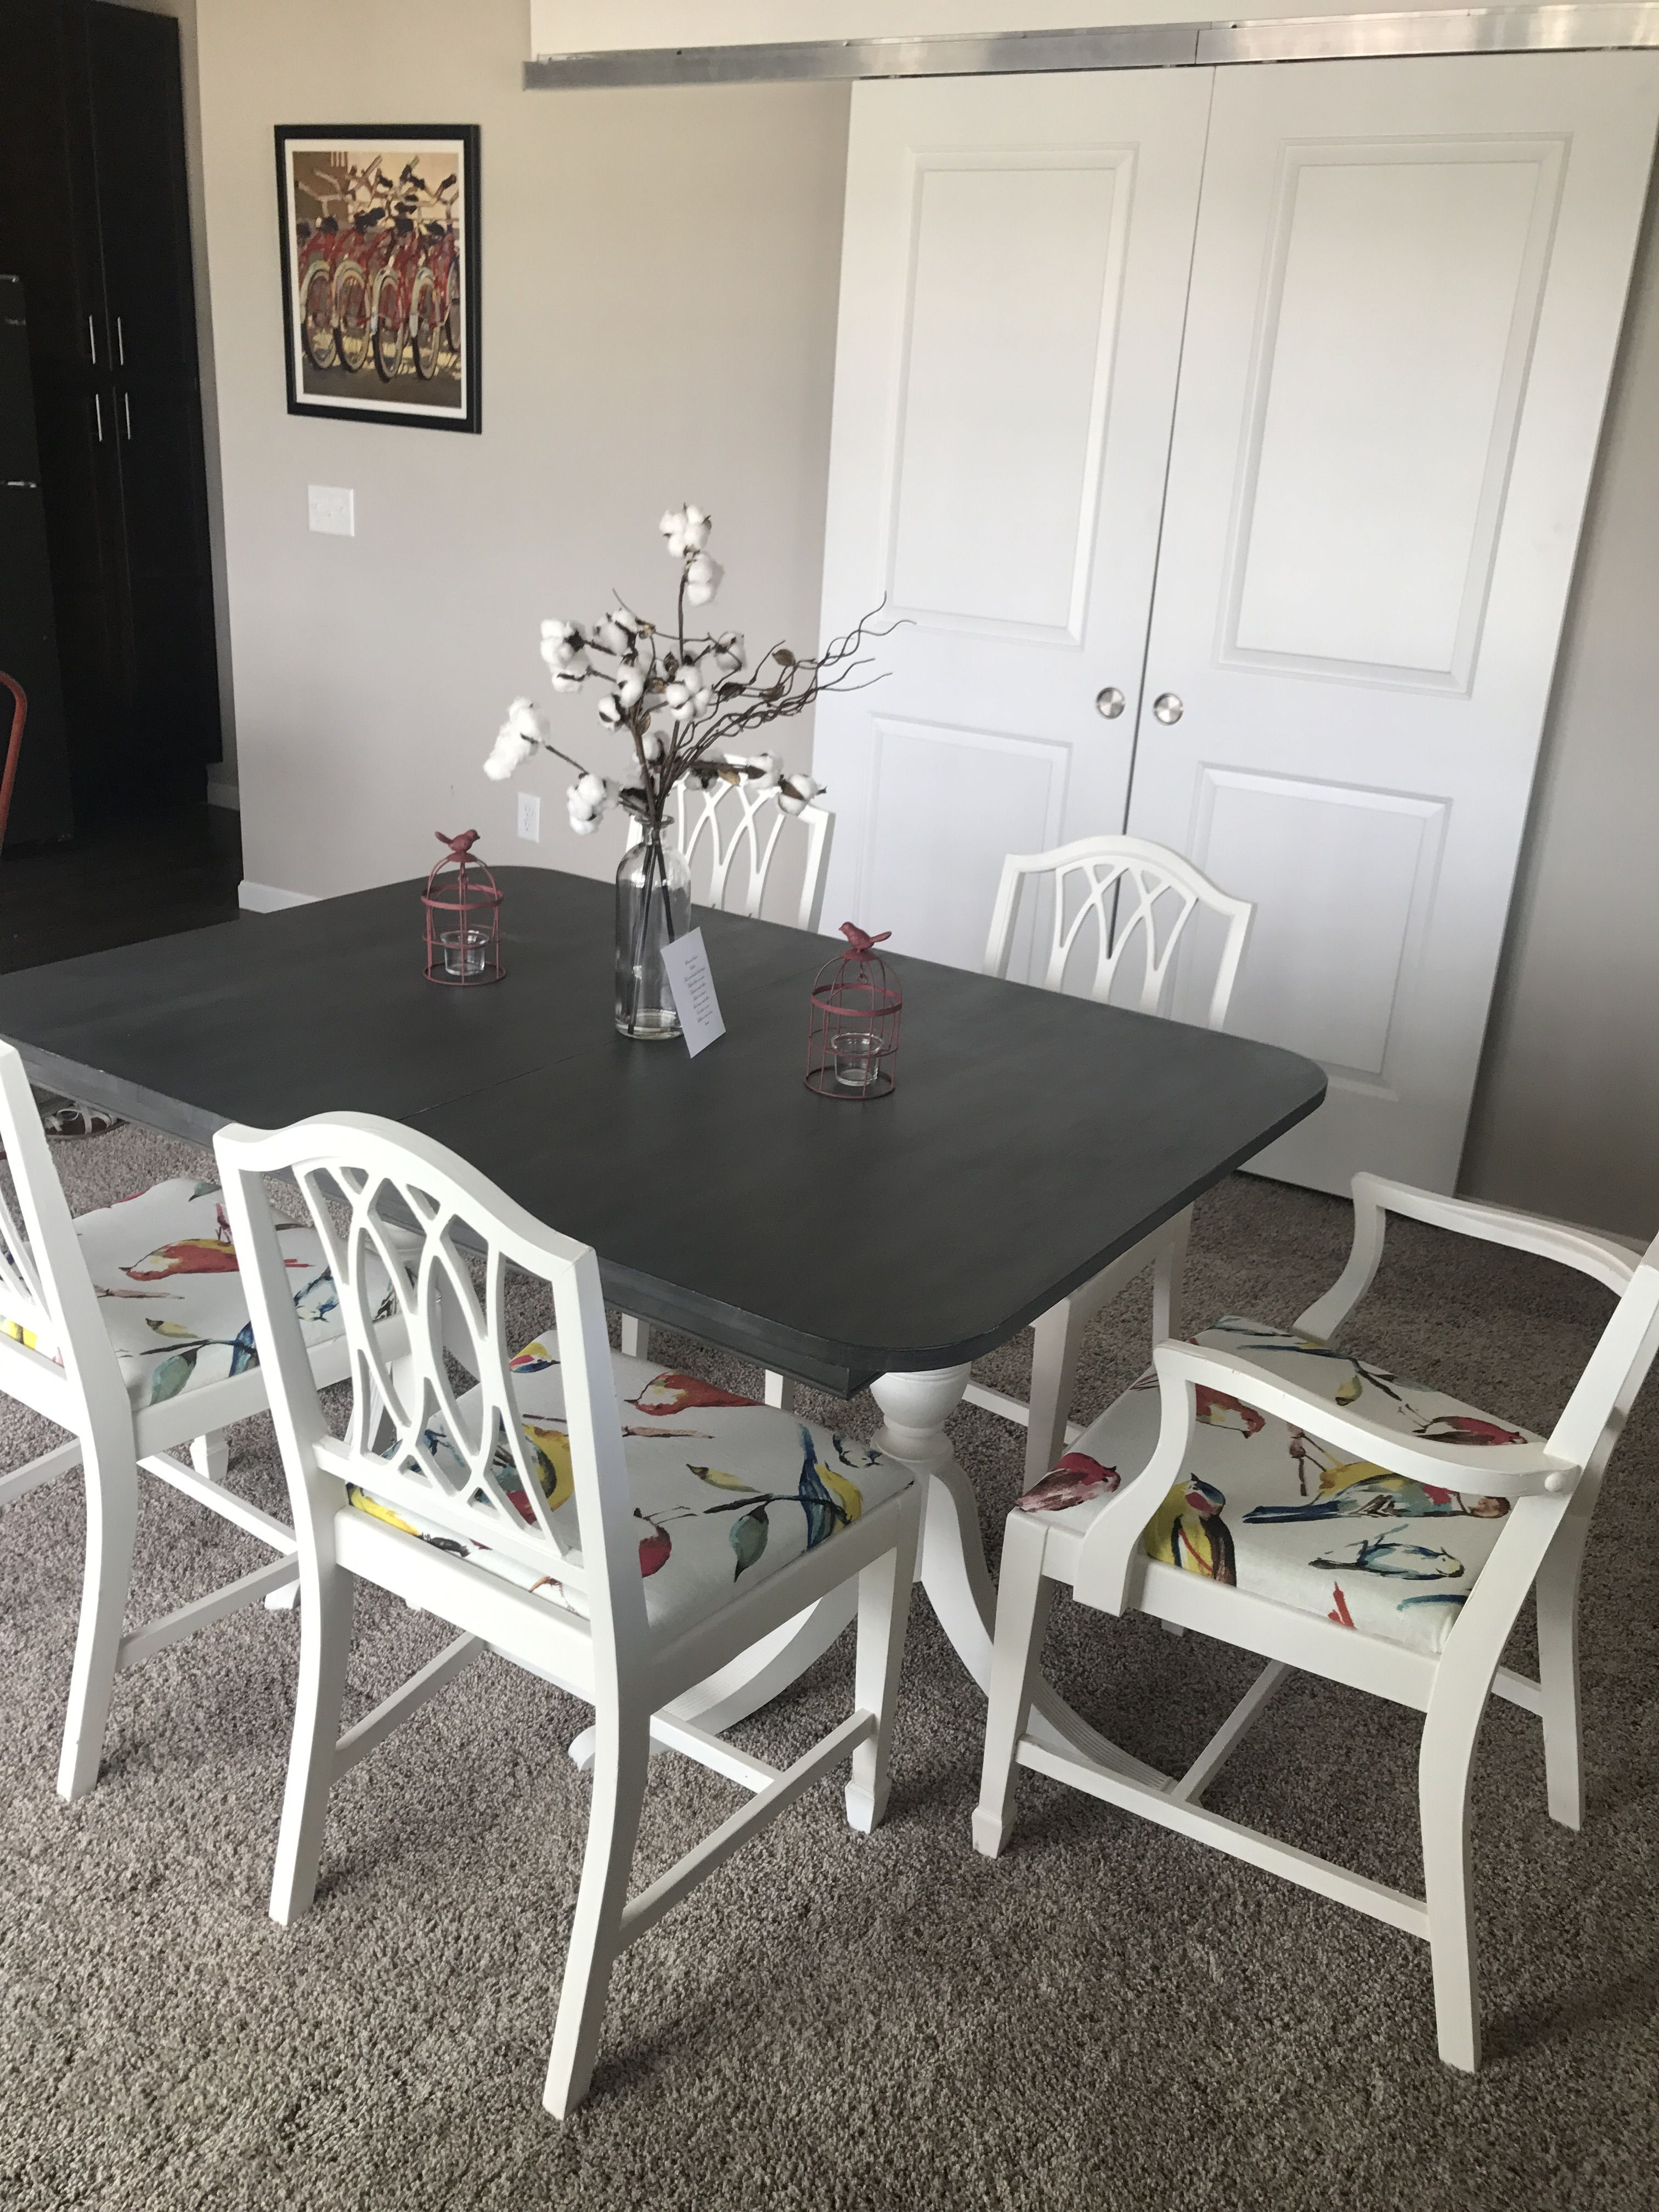 Dining Table Makeover With Annie Sloan Chalk Paint Duncan Phyfe Painted Old White